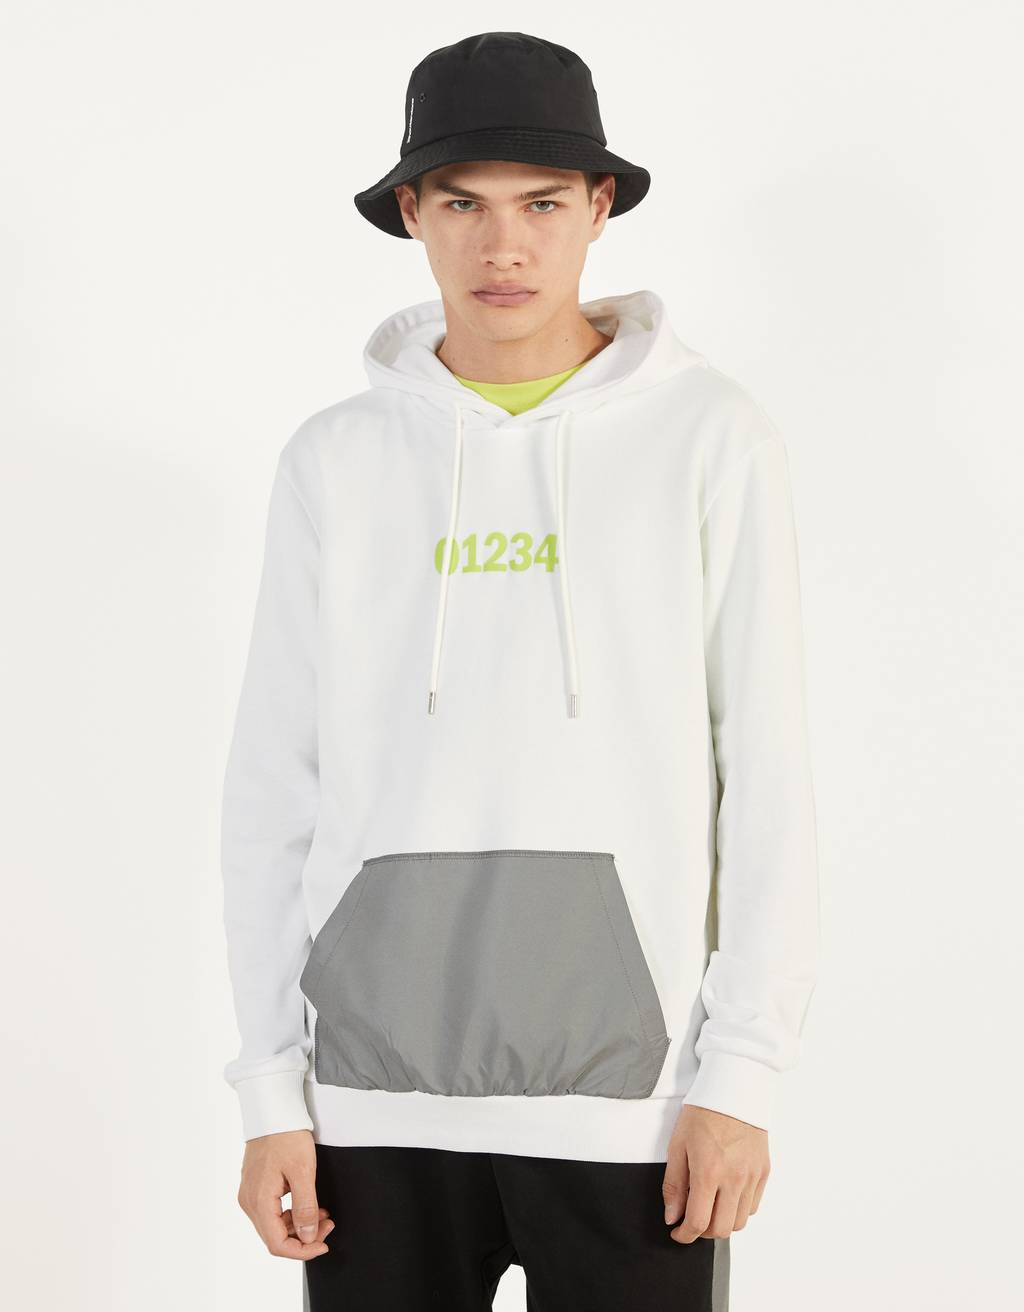 Hoodie with a reflective pocket